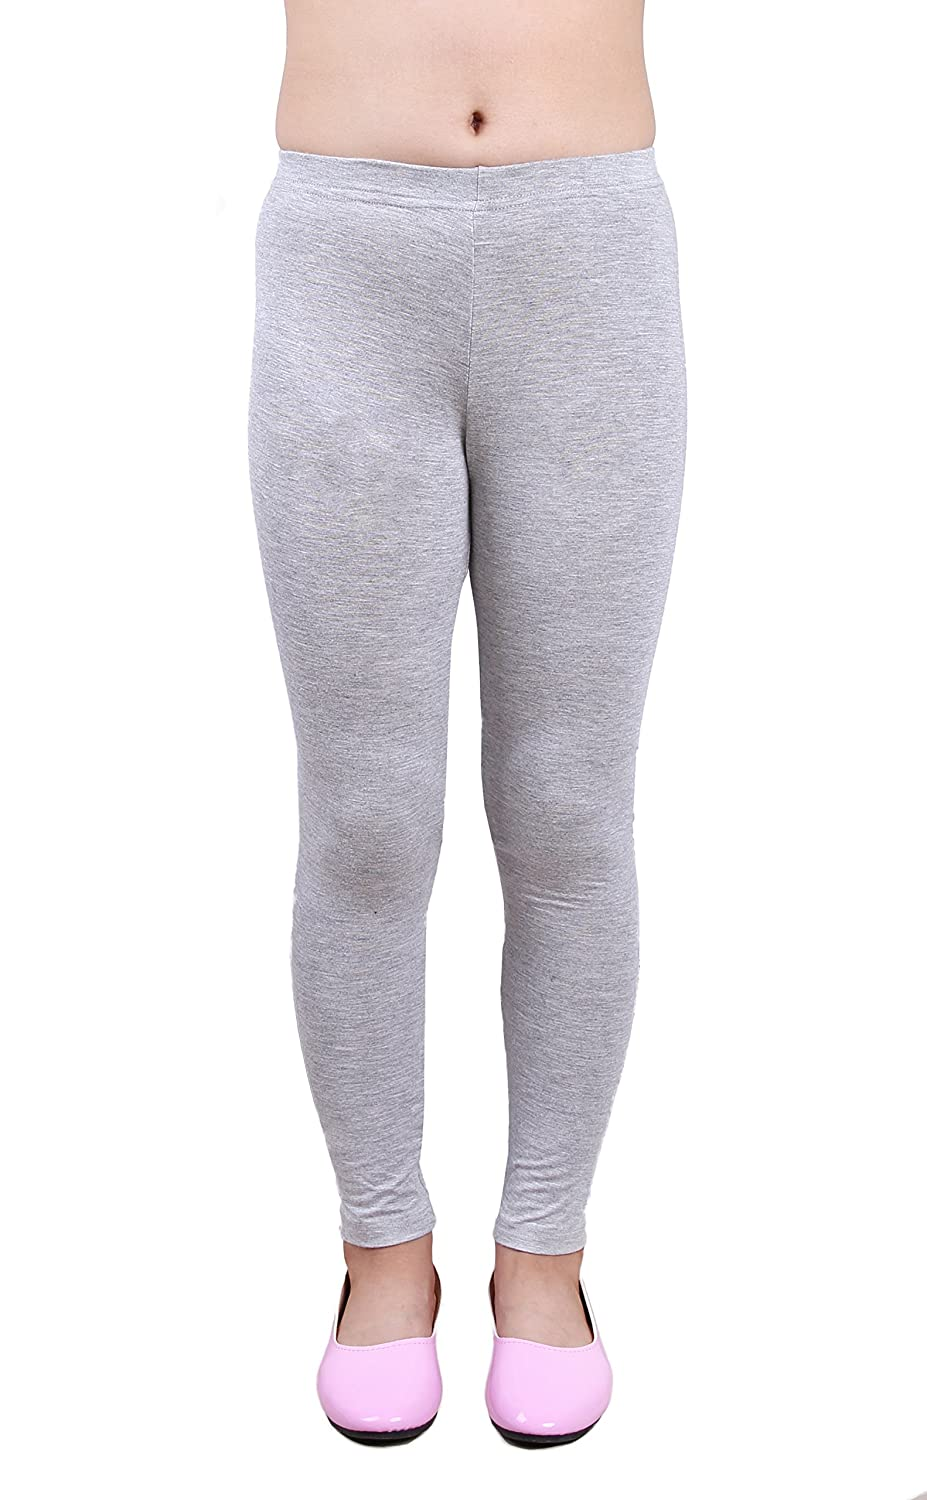 IRELIA Girls Modal Solid Active Leggings for Spring/Fall